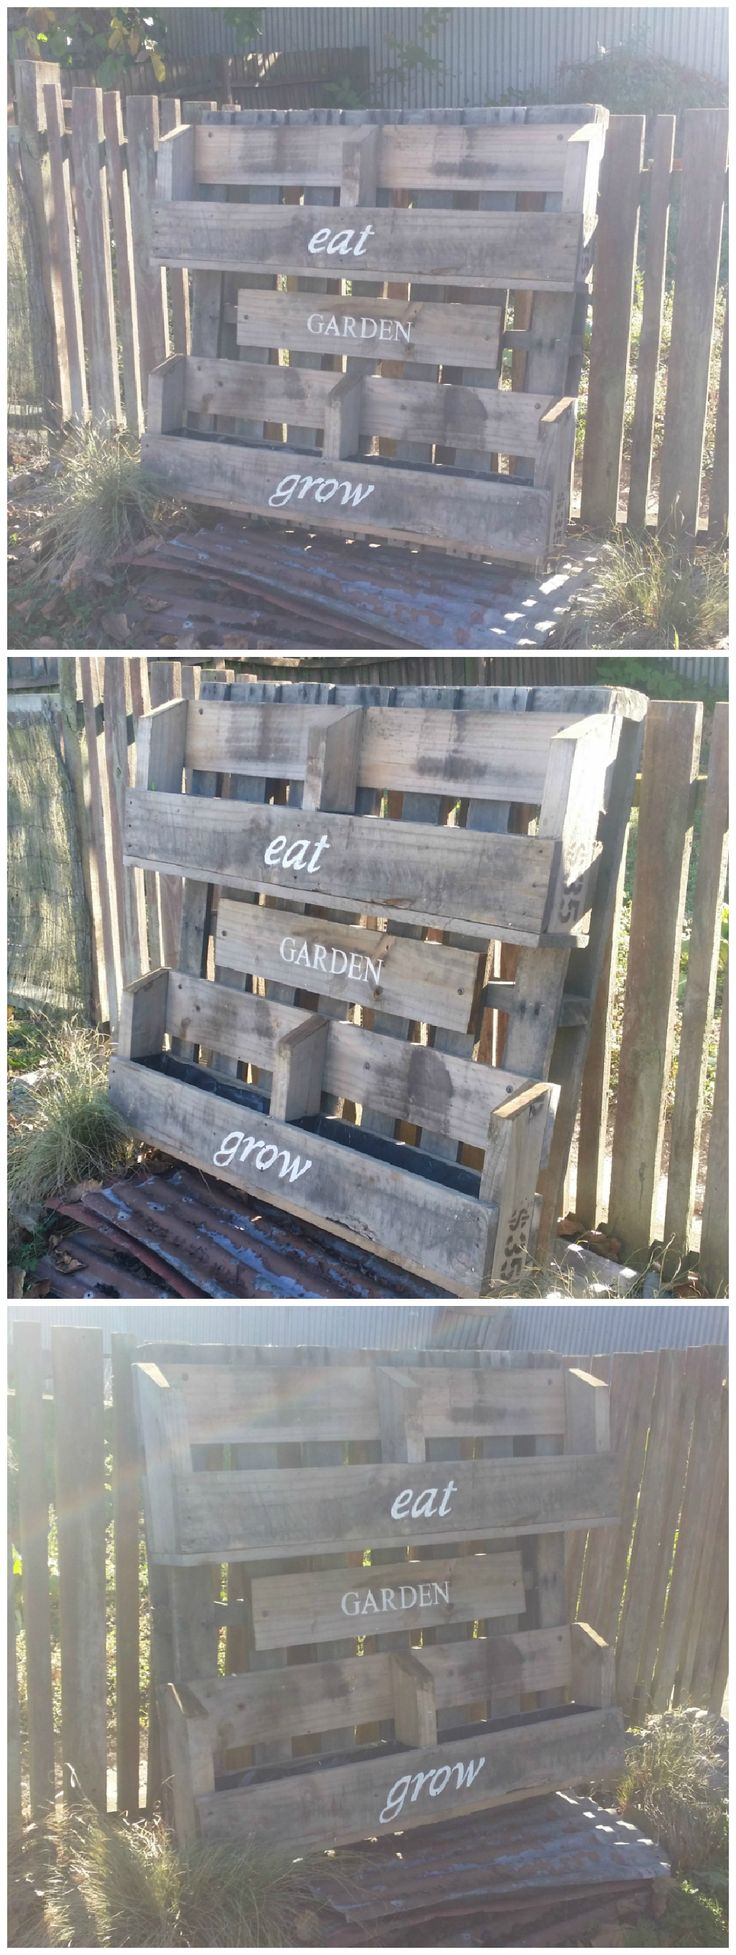 Made a 4 bay planter out of two pallets. Stenciled some fancy words on it. Followed some plans from another pin to make the boxes and then changed it up into something that would sell.